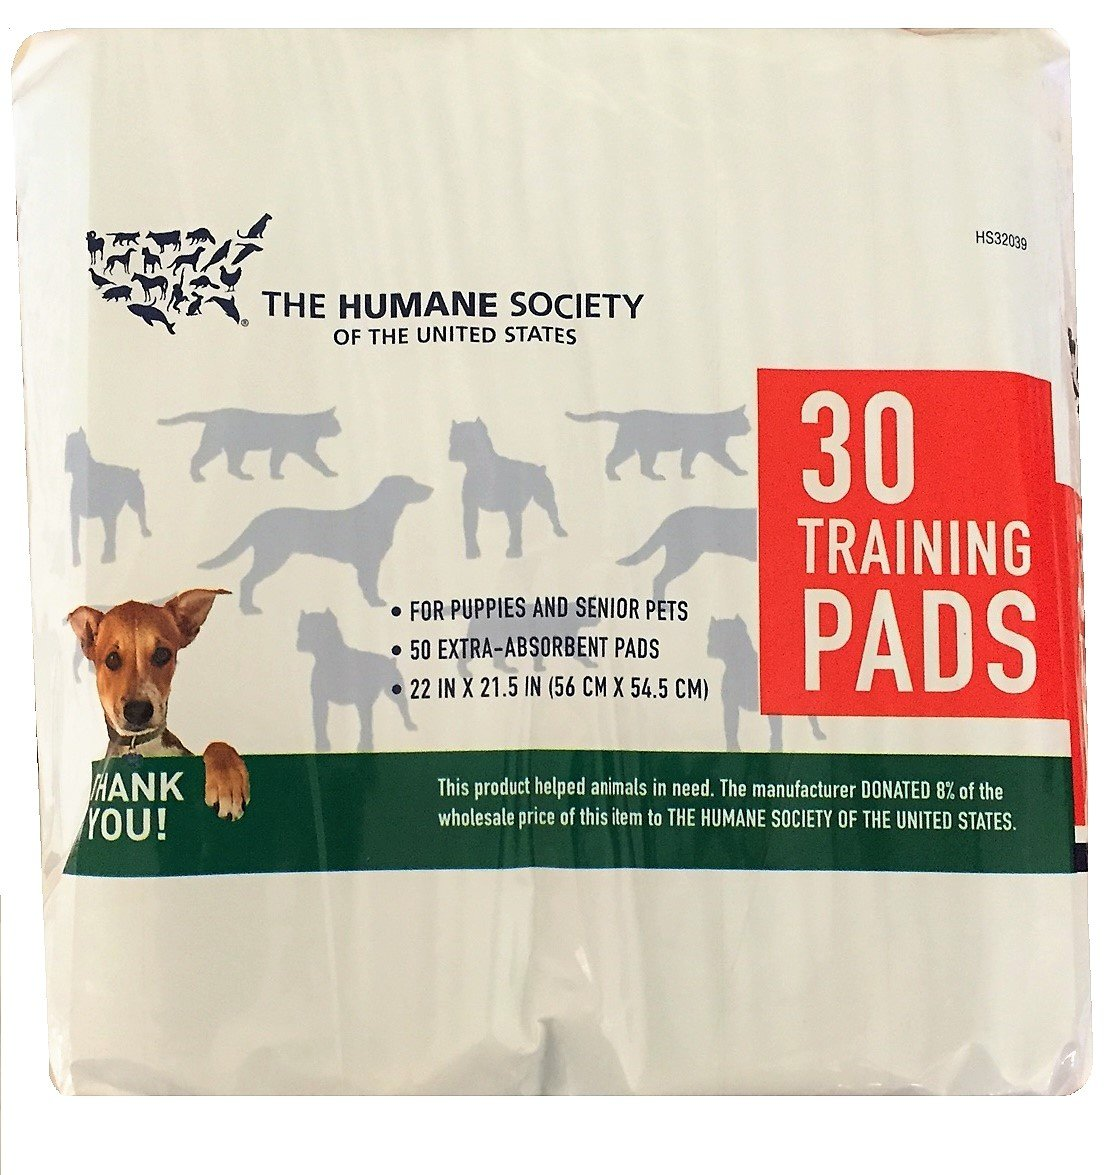 The Humane Society Extra-Absorbent Puppy and Dog Training Pads - 30 Pet Training Pads